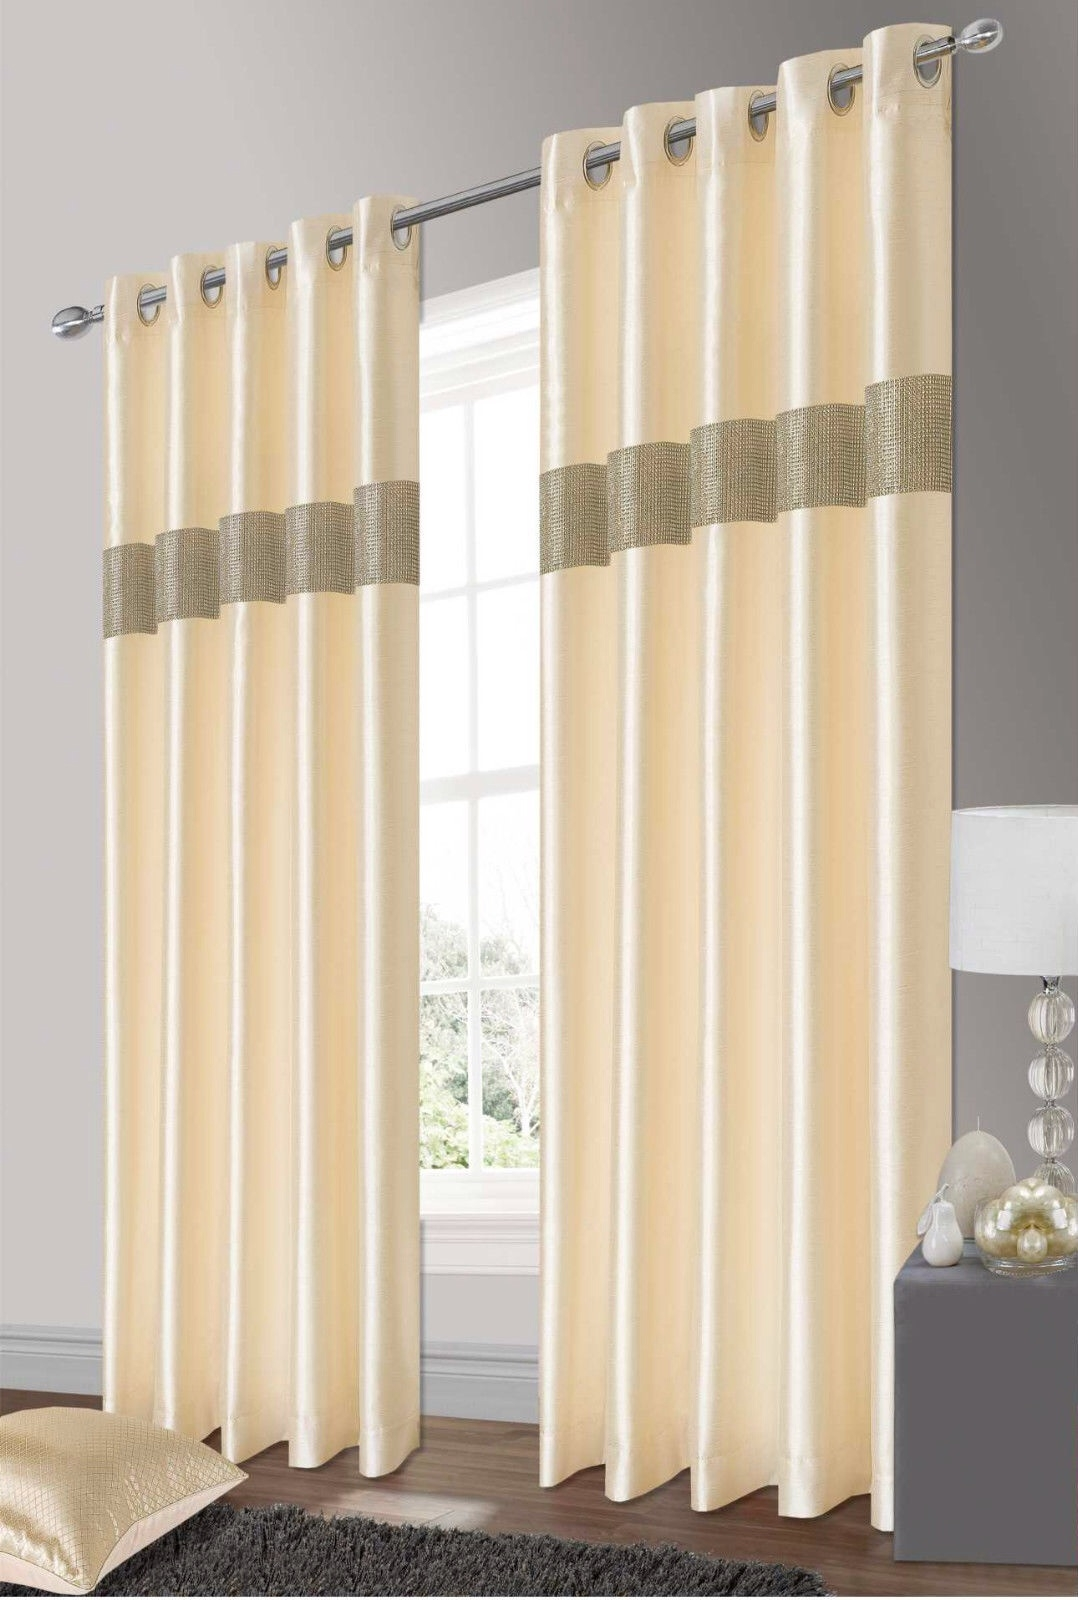 Eyelet Curtains With Cream Lined Curtains (Image 7 of 15)